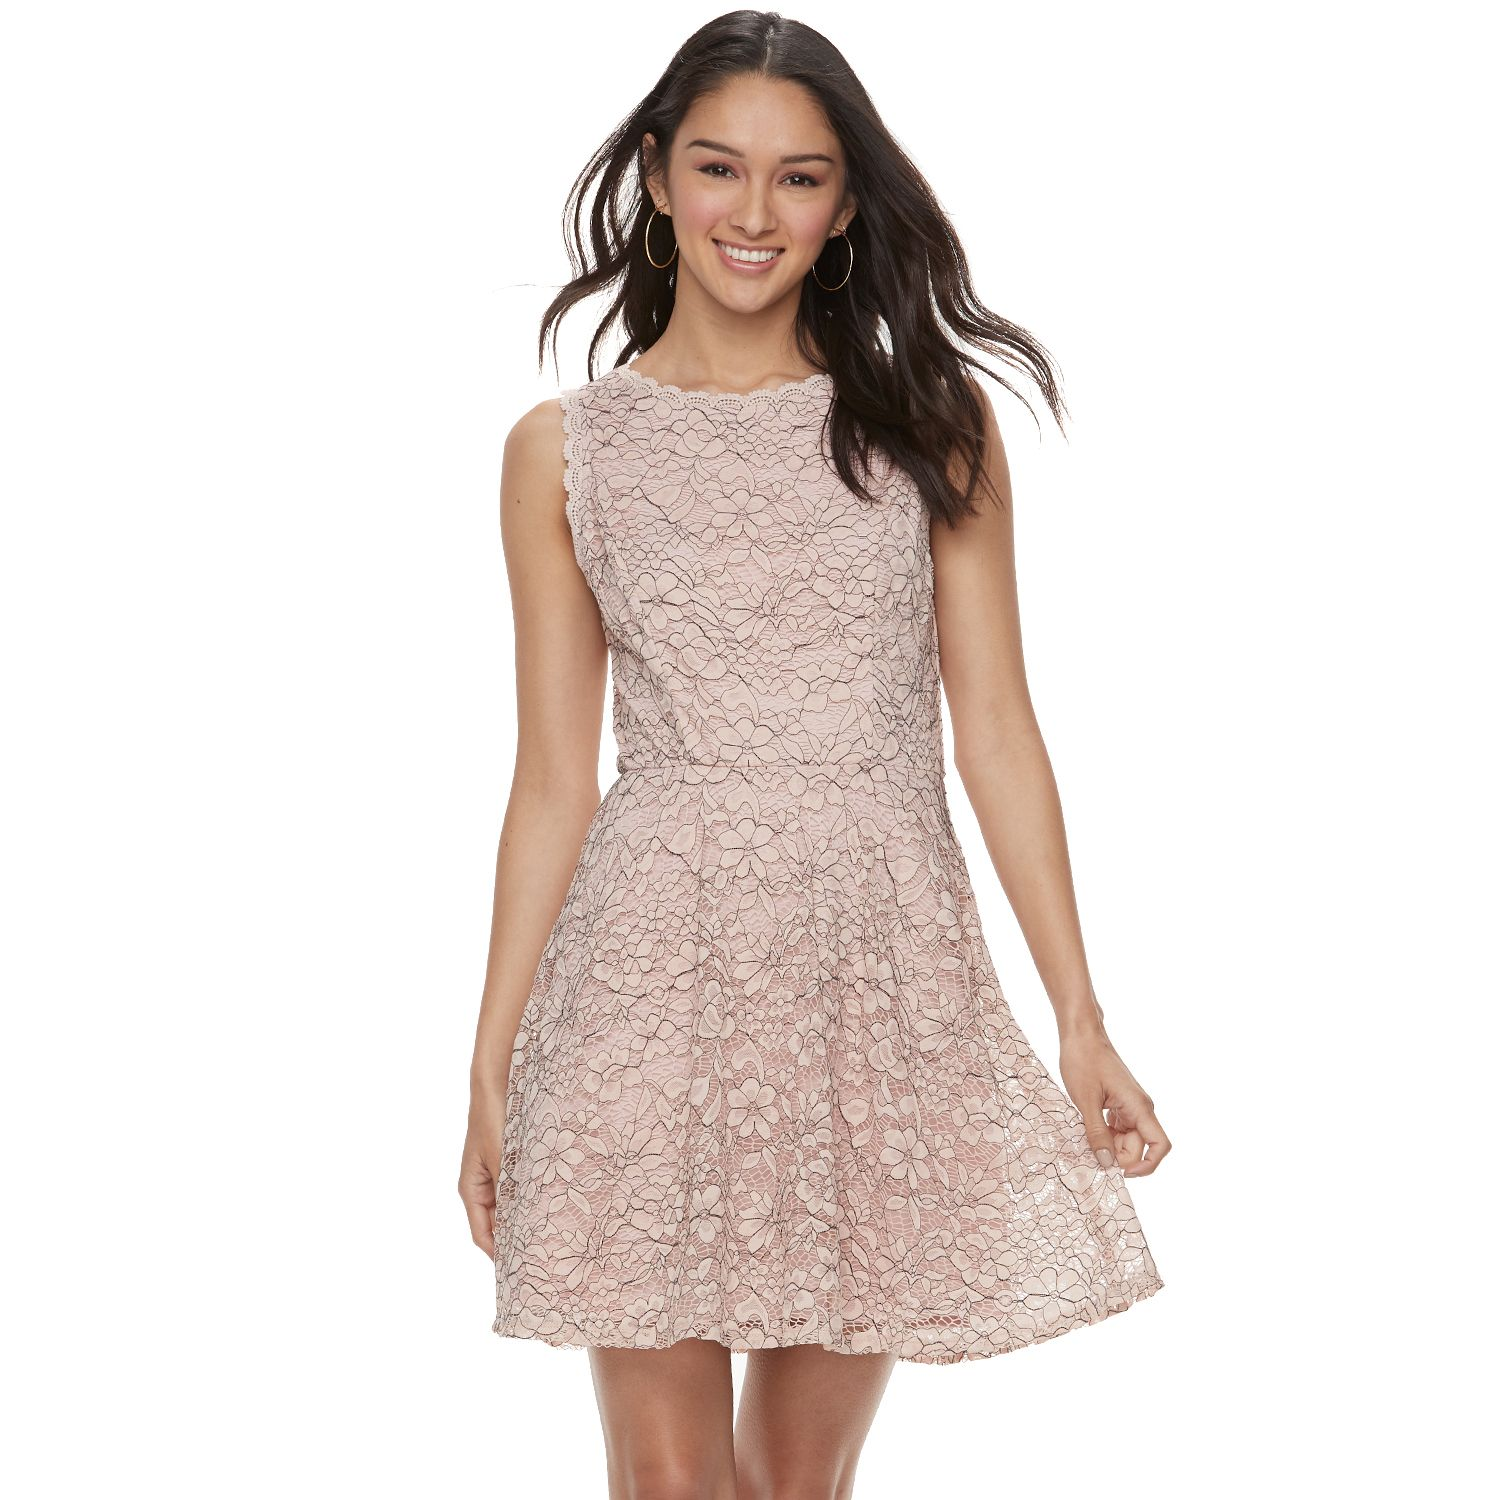 Dress Stores for Juniors